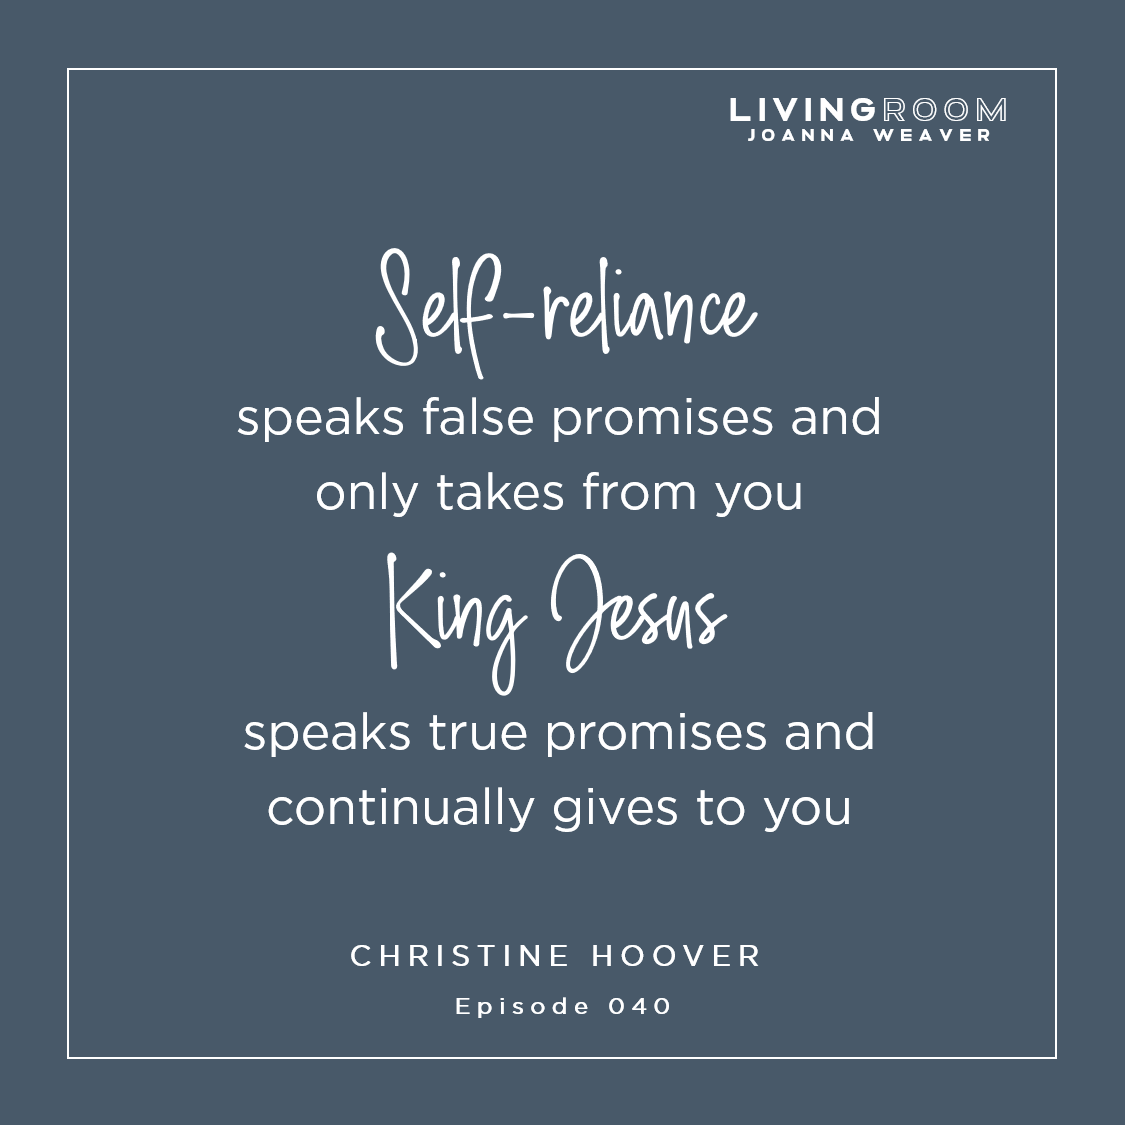 """Self-reliance speaks false promises and only takes from you. King Jesus speaks true promises and continually gives to you."" - Christine Hoover - The Living Room - Episode 040"